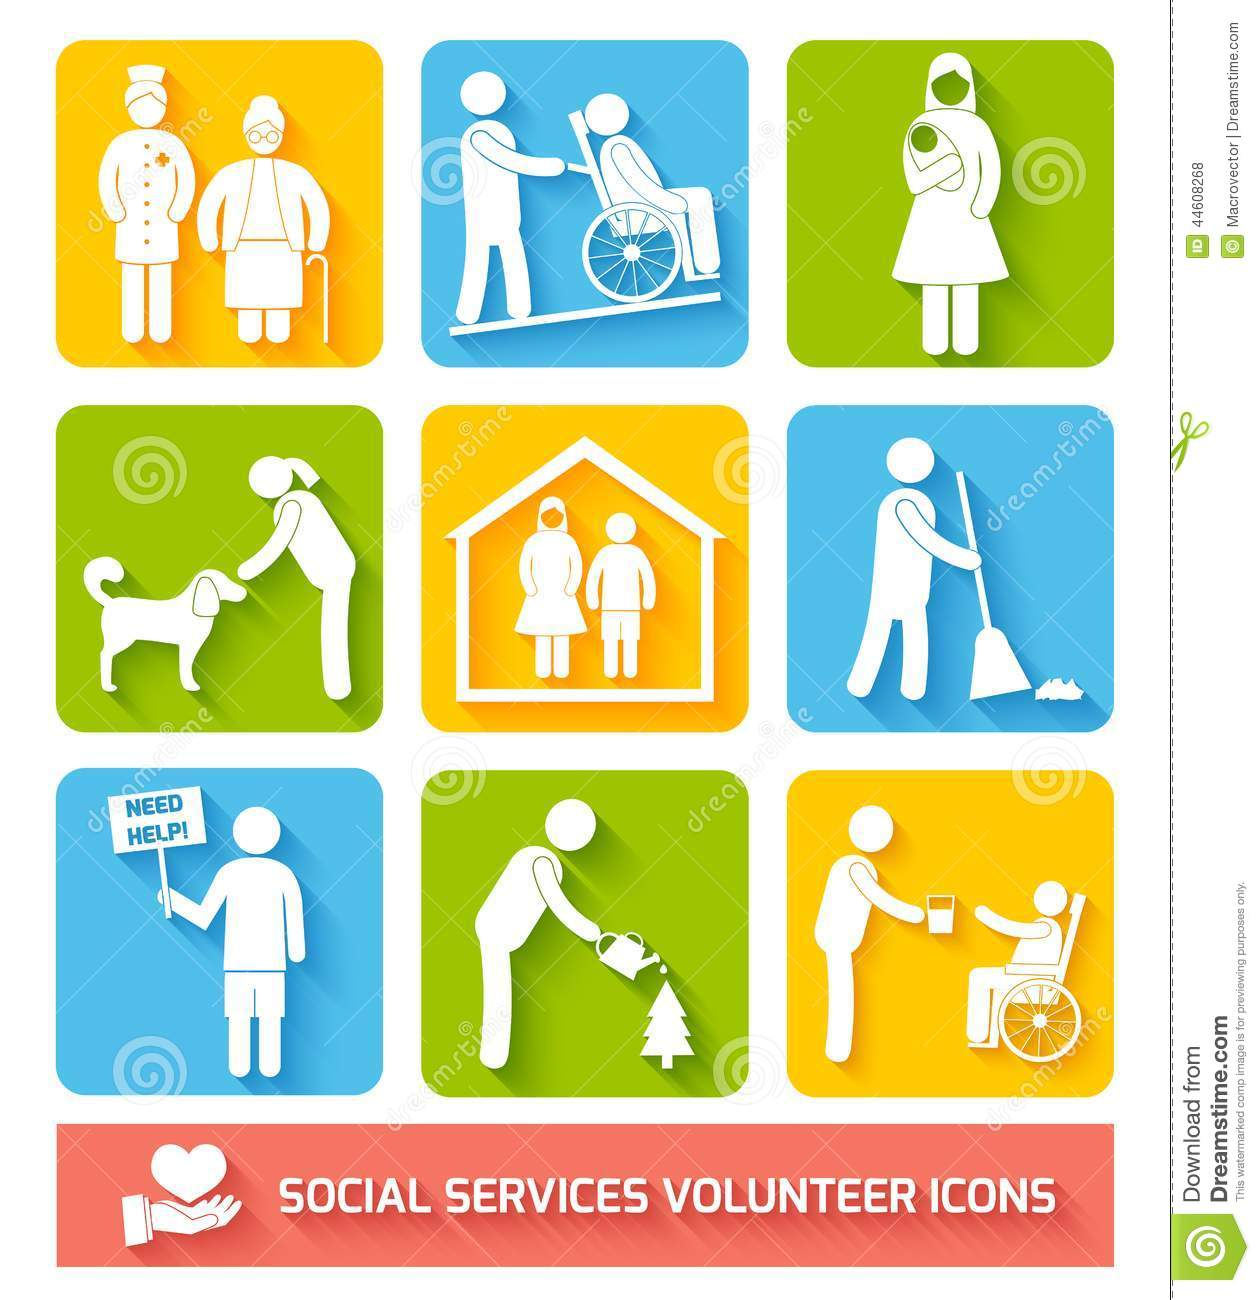 Social Services Icons Set Flat Stock Vector - Image: 44608268